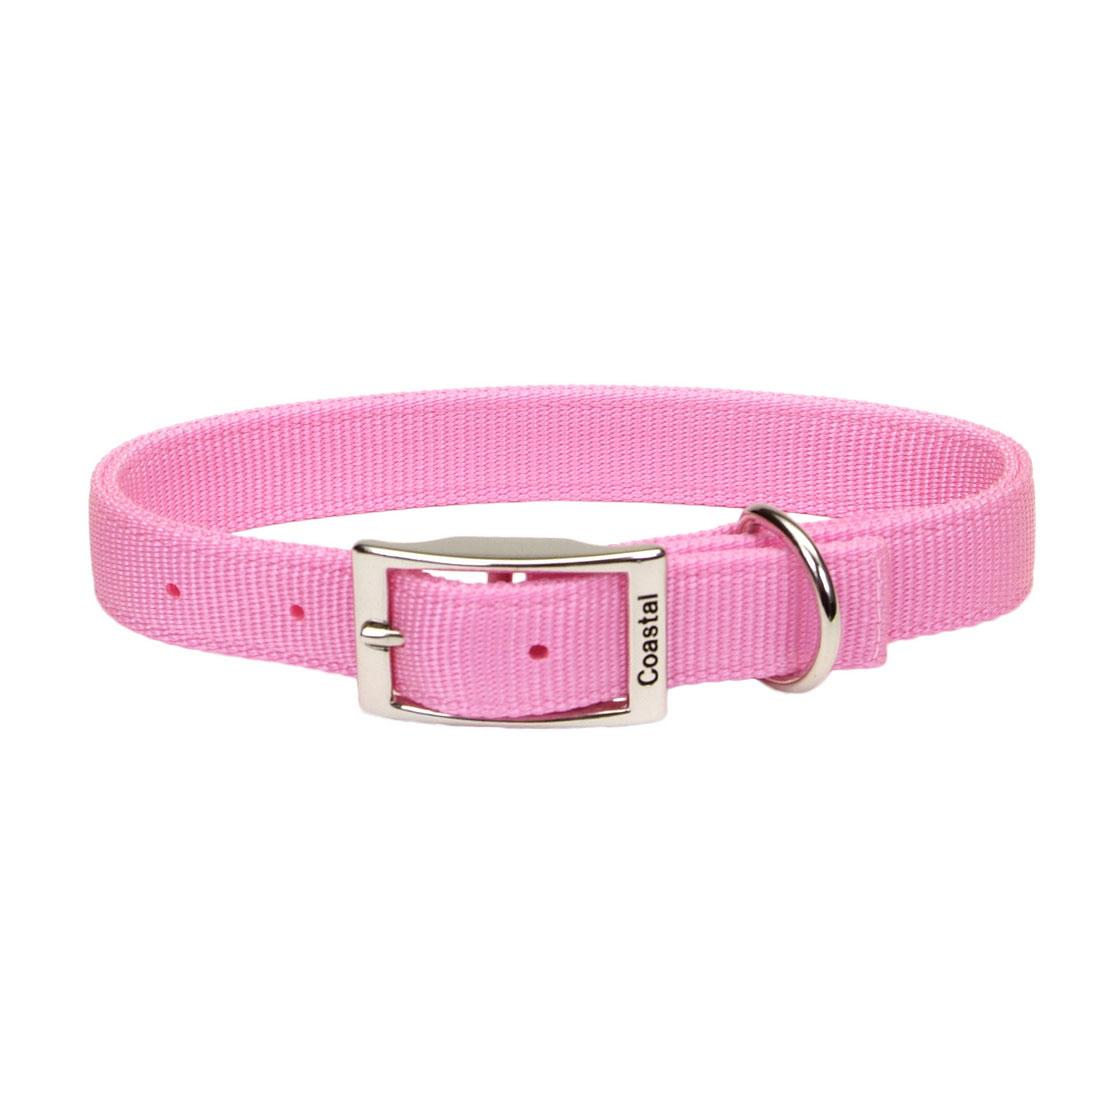 Coastal Double-Ply Dog Collar, Pink Bright, 1-in x 24-in